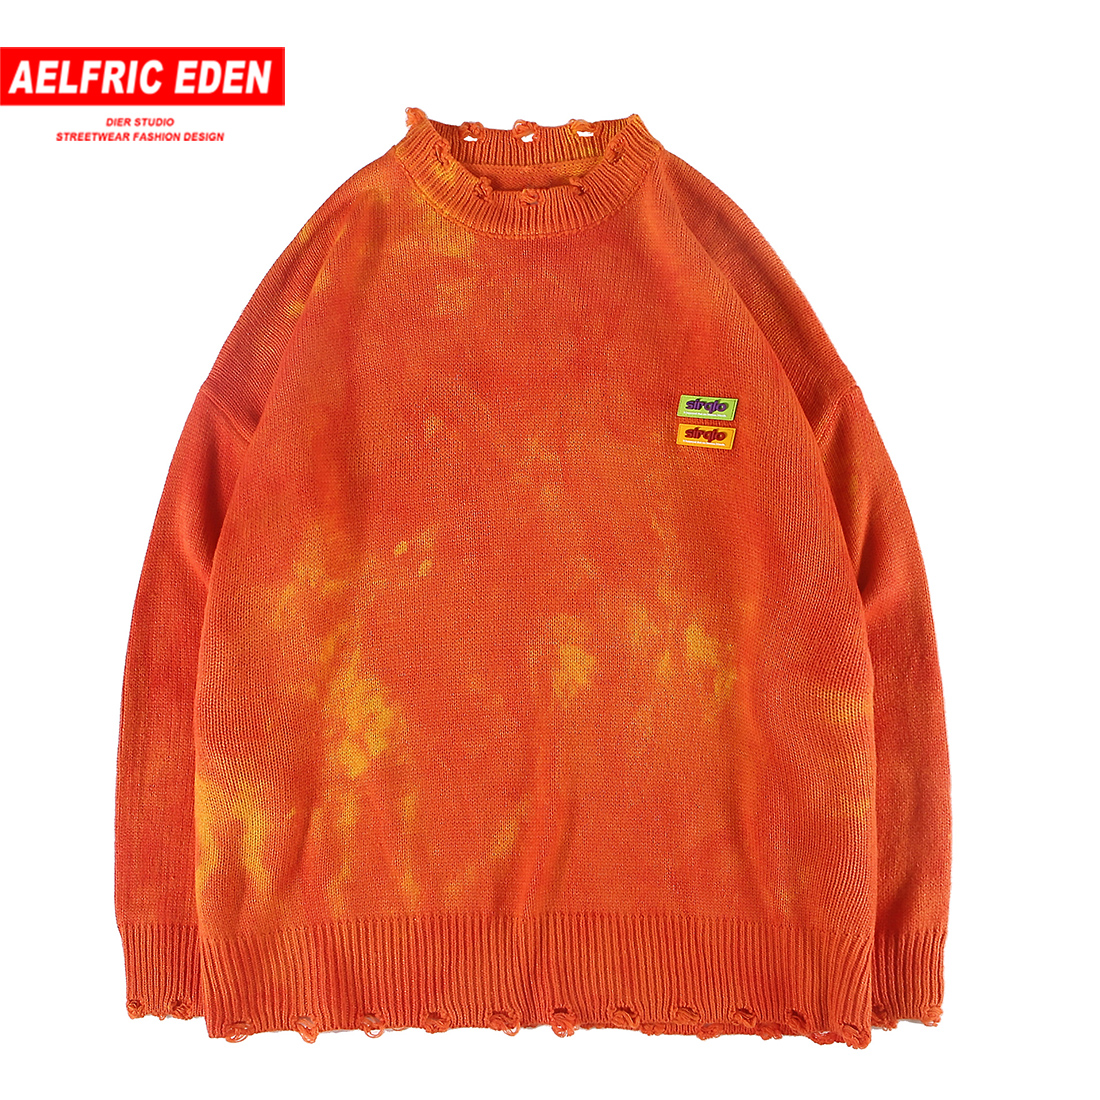 Aelfric Eden Vintage Letter Print Hone Knitted Pullover Sweaters Mens Harajuku Streetwear Autumn Winter Fashion Casual Sweater